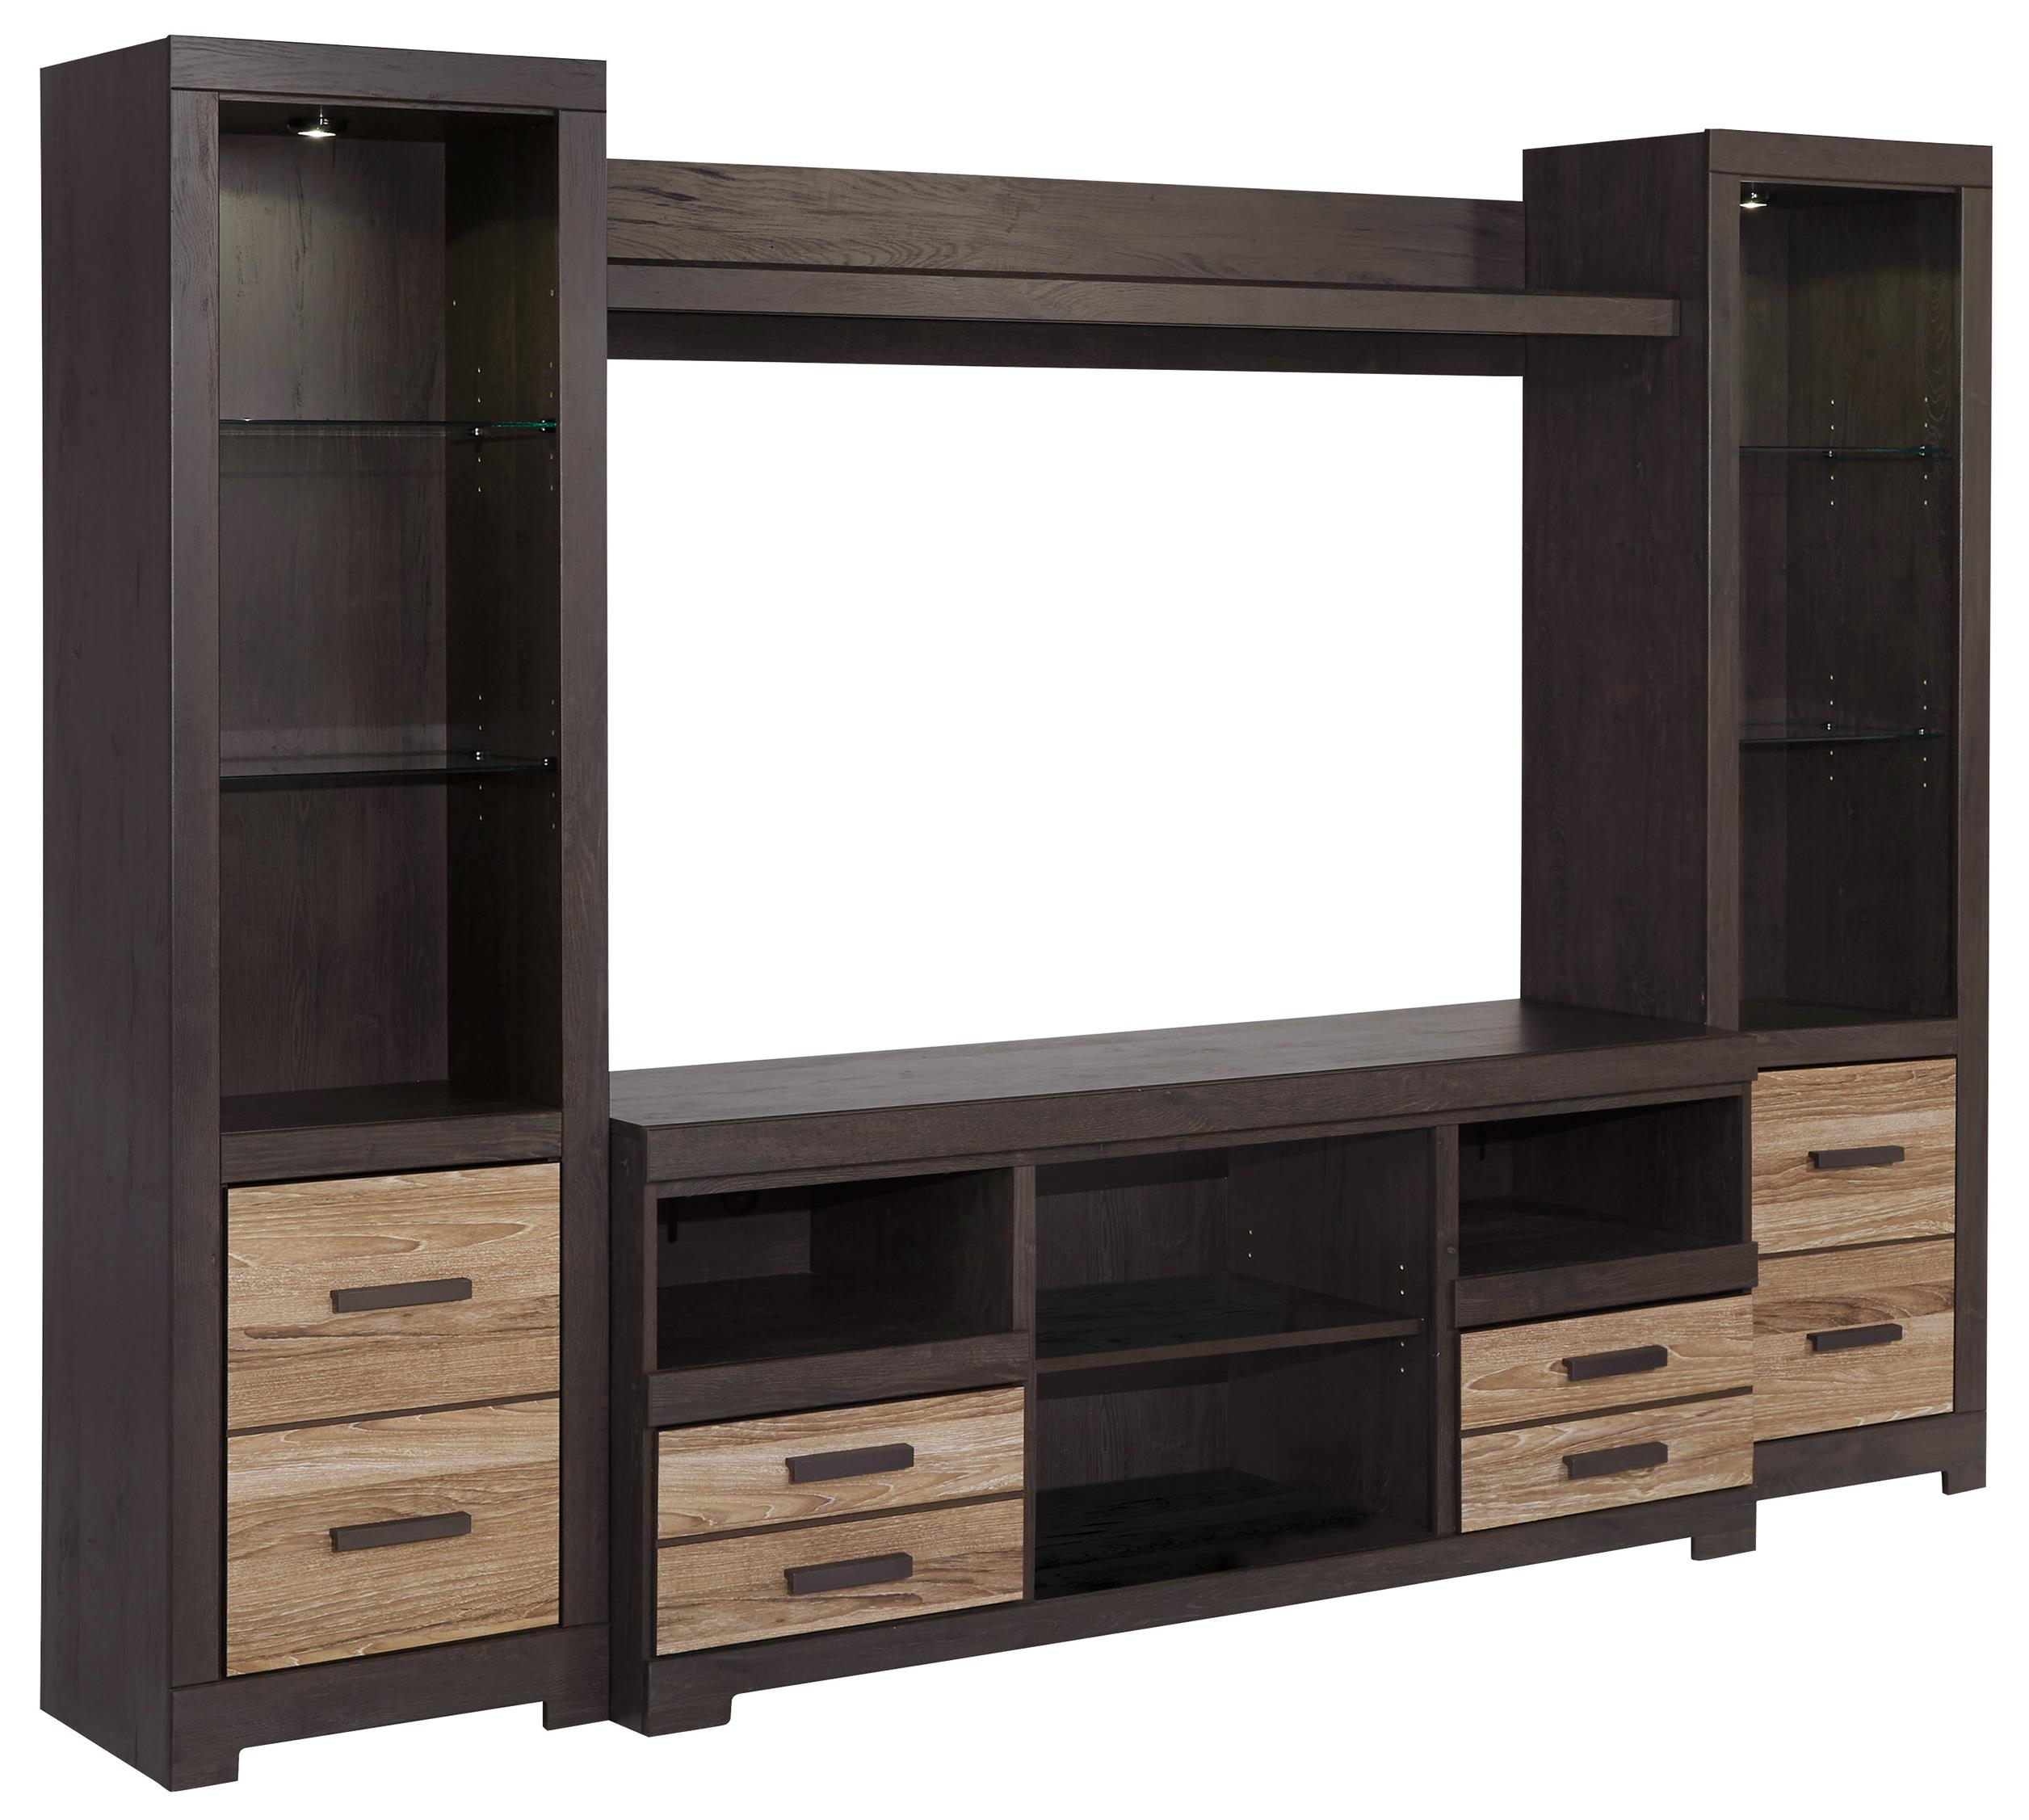 Signature Design by Ashley Harlinton Large TV Stand & 2 Tall Piers w/ Bridge - Item Number: W325-68+2x24+27